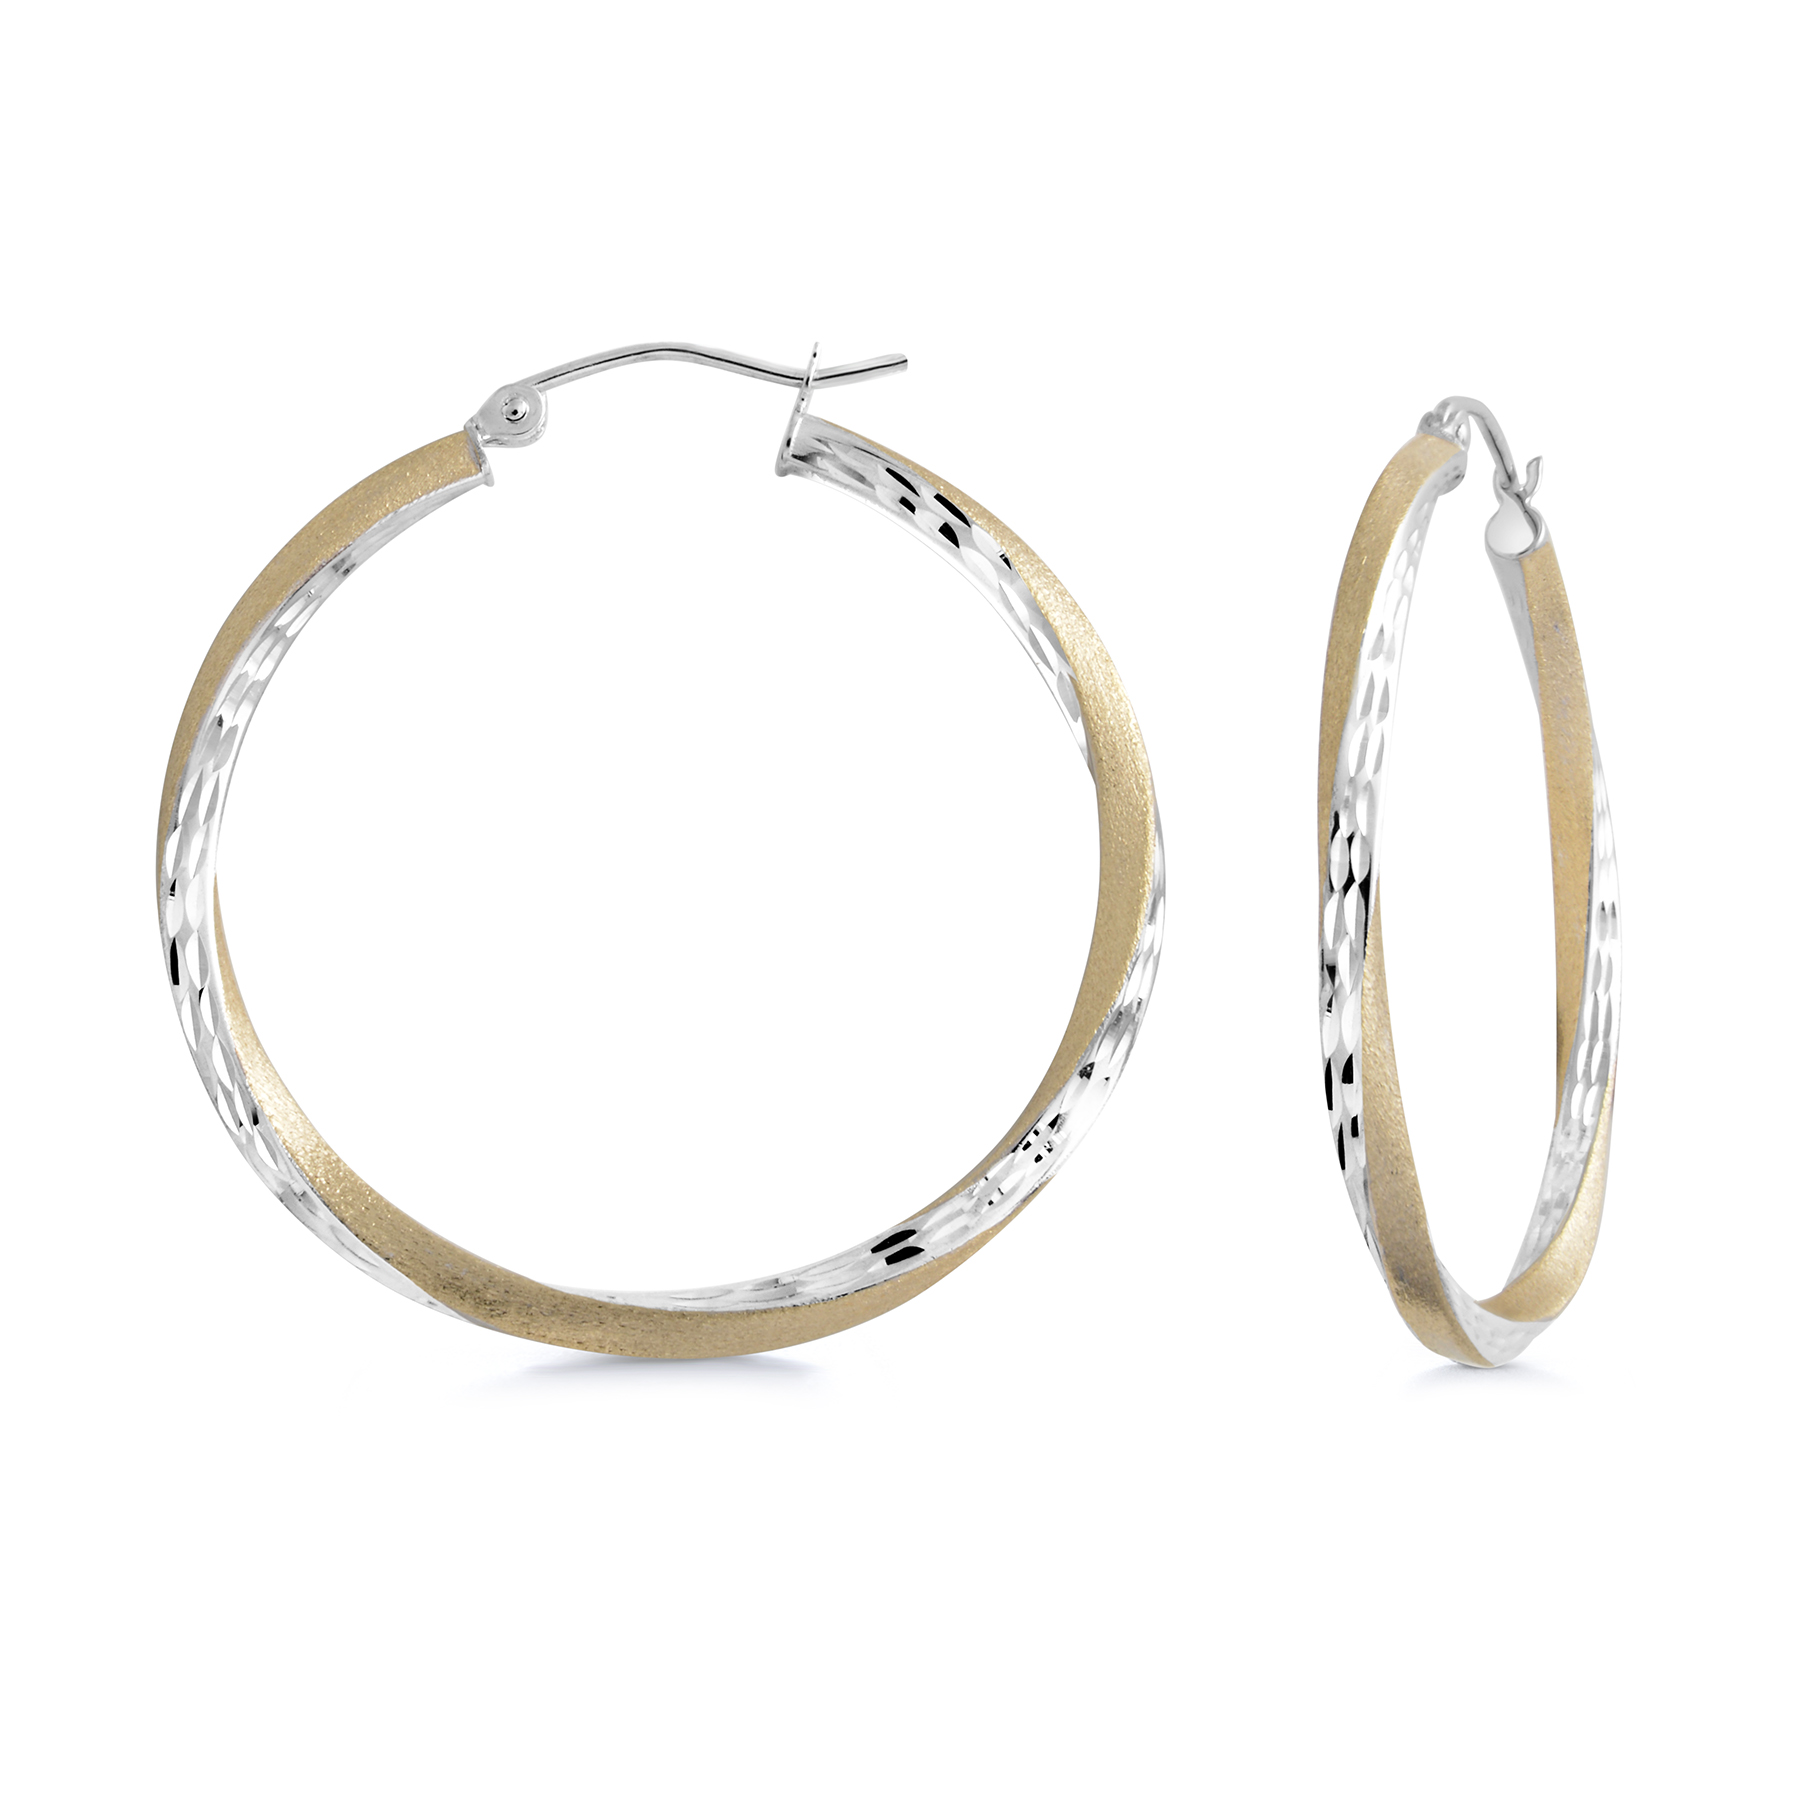 Hoop earrings - 10K 2 tone Gold (yellow and white)